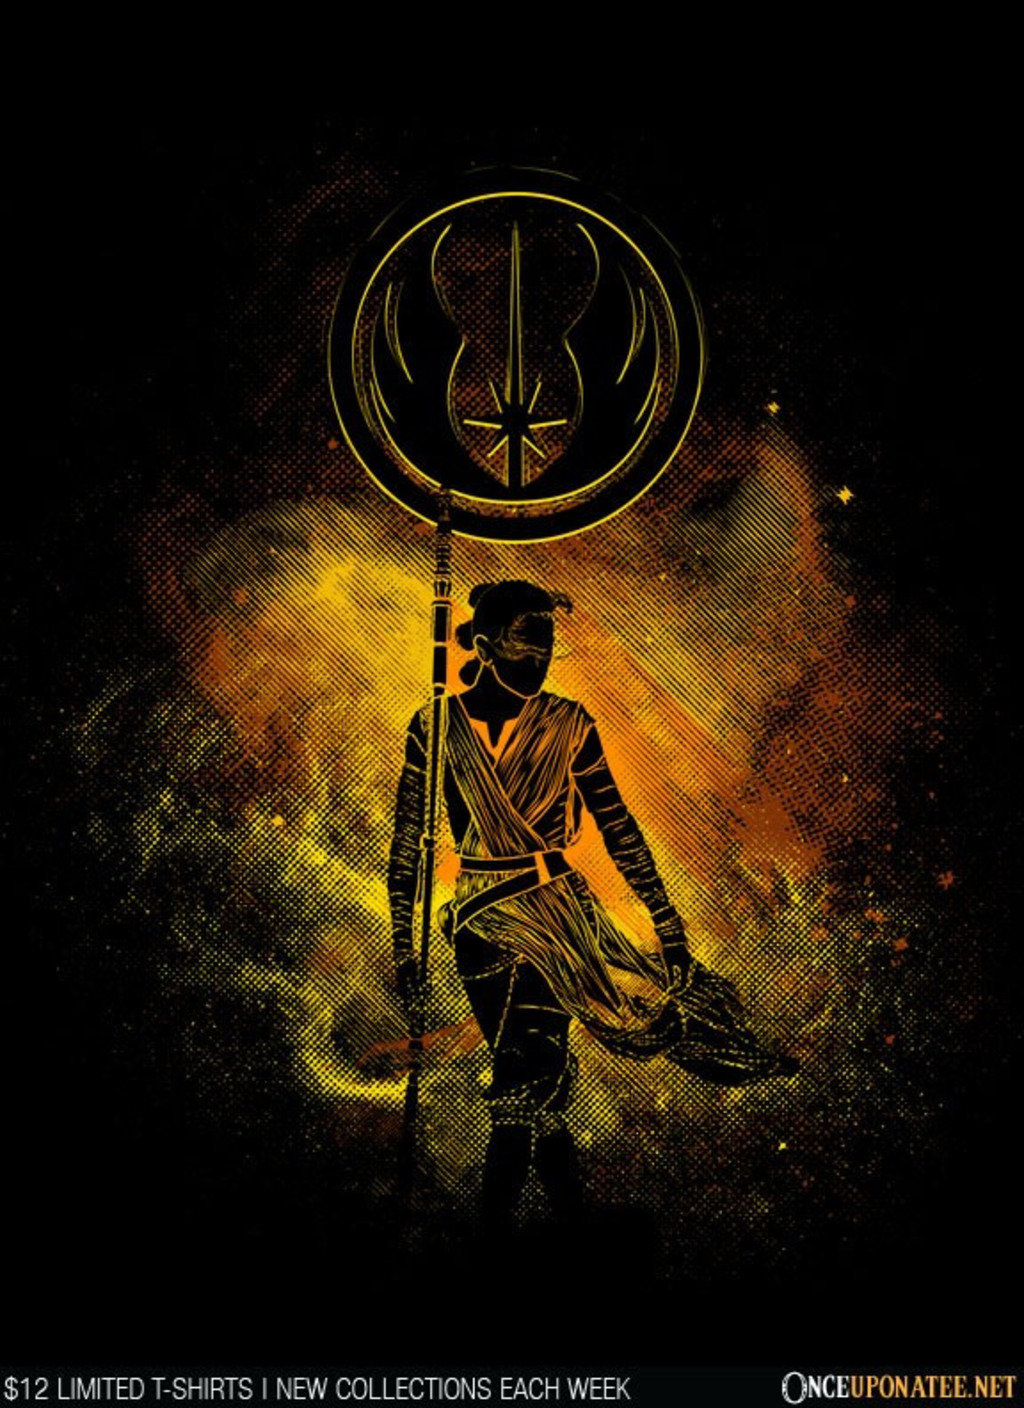 Once Upon a Tee: Rey Art